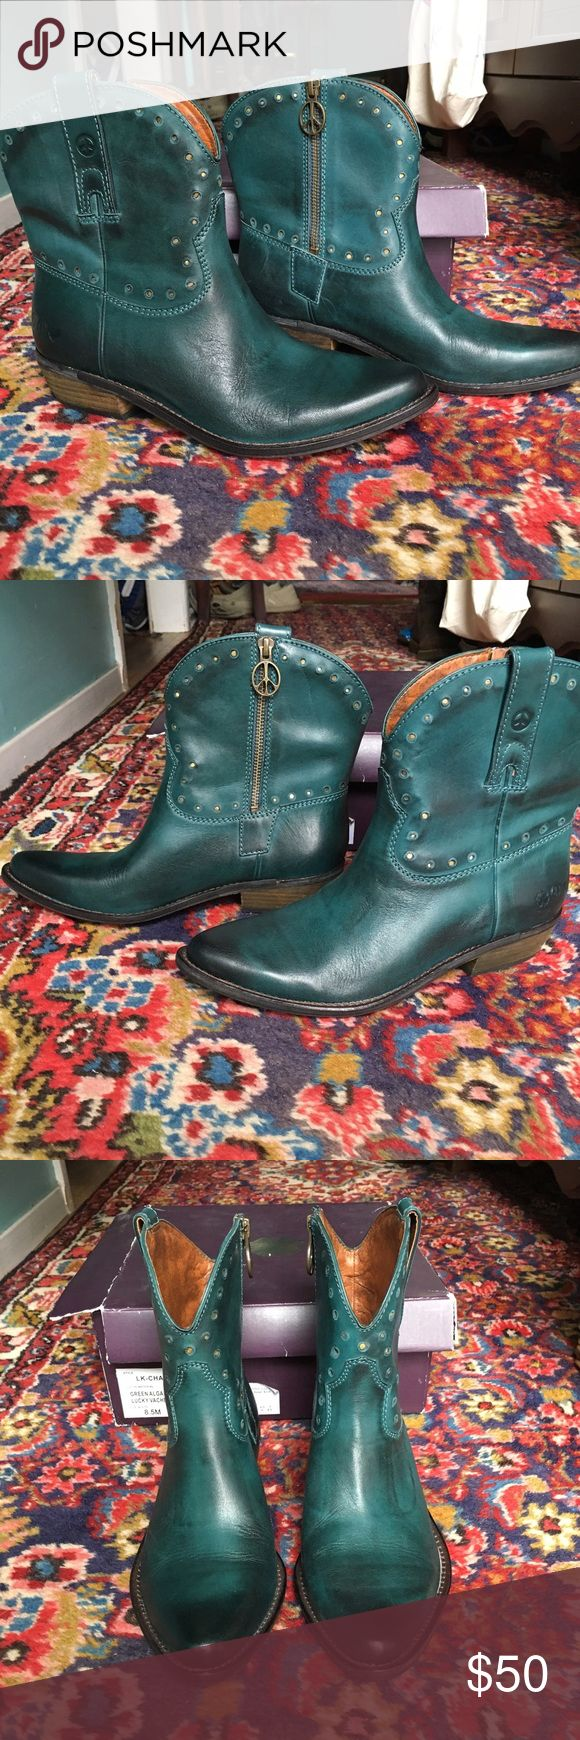 Lucky Brand Chantel green short cowboy boot 8.5 Here is a cute pair of Lucky brand short green cowboy boots in size 8.5. Worn once or twice and stored in box. Lucky Brand Shoes Ankle Boots & Booties